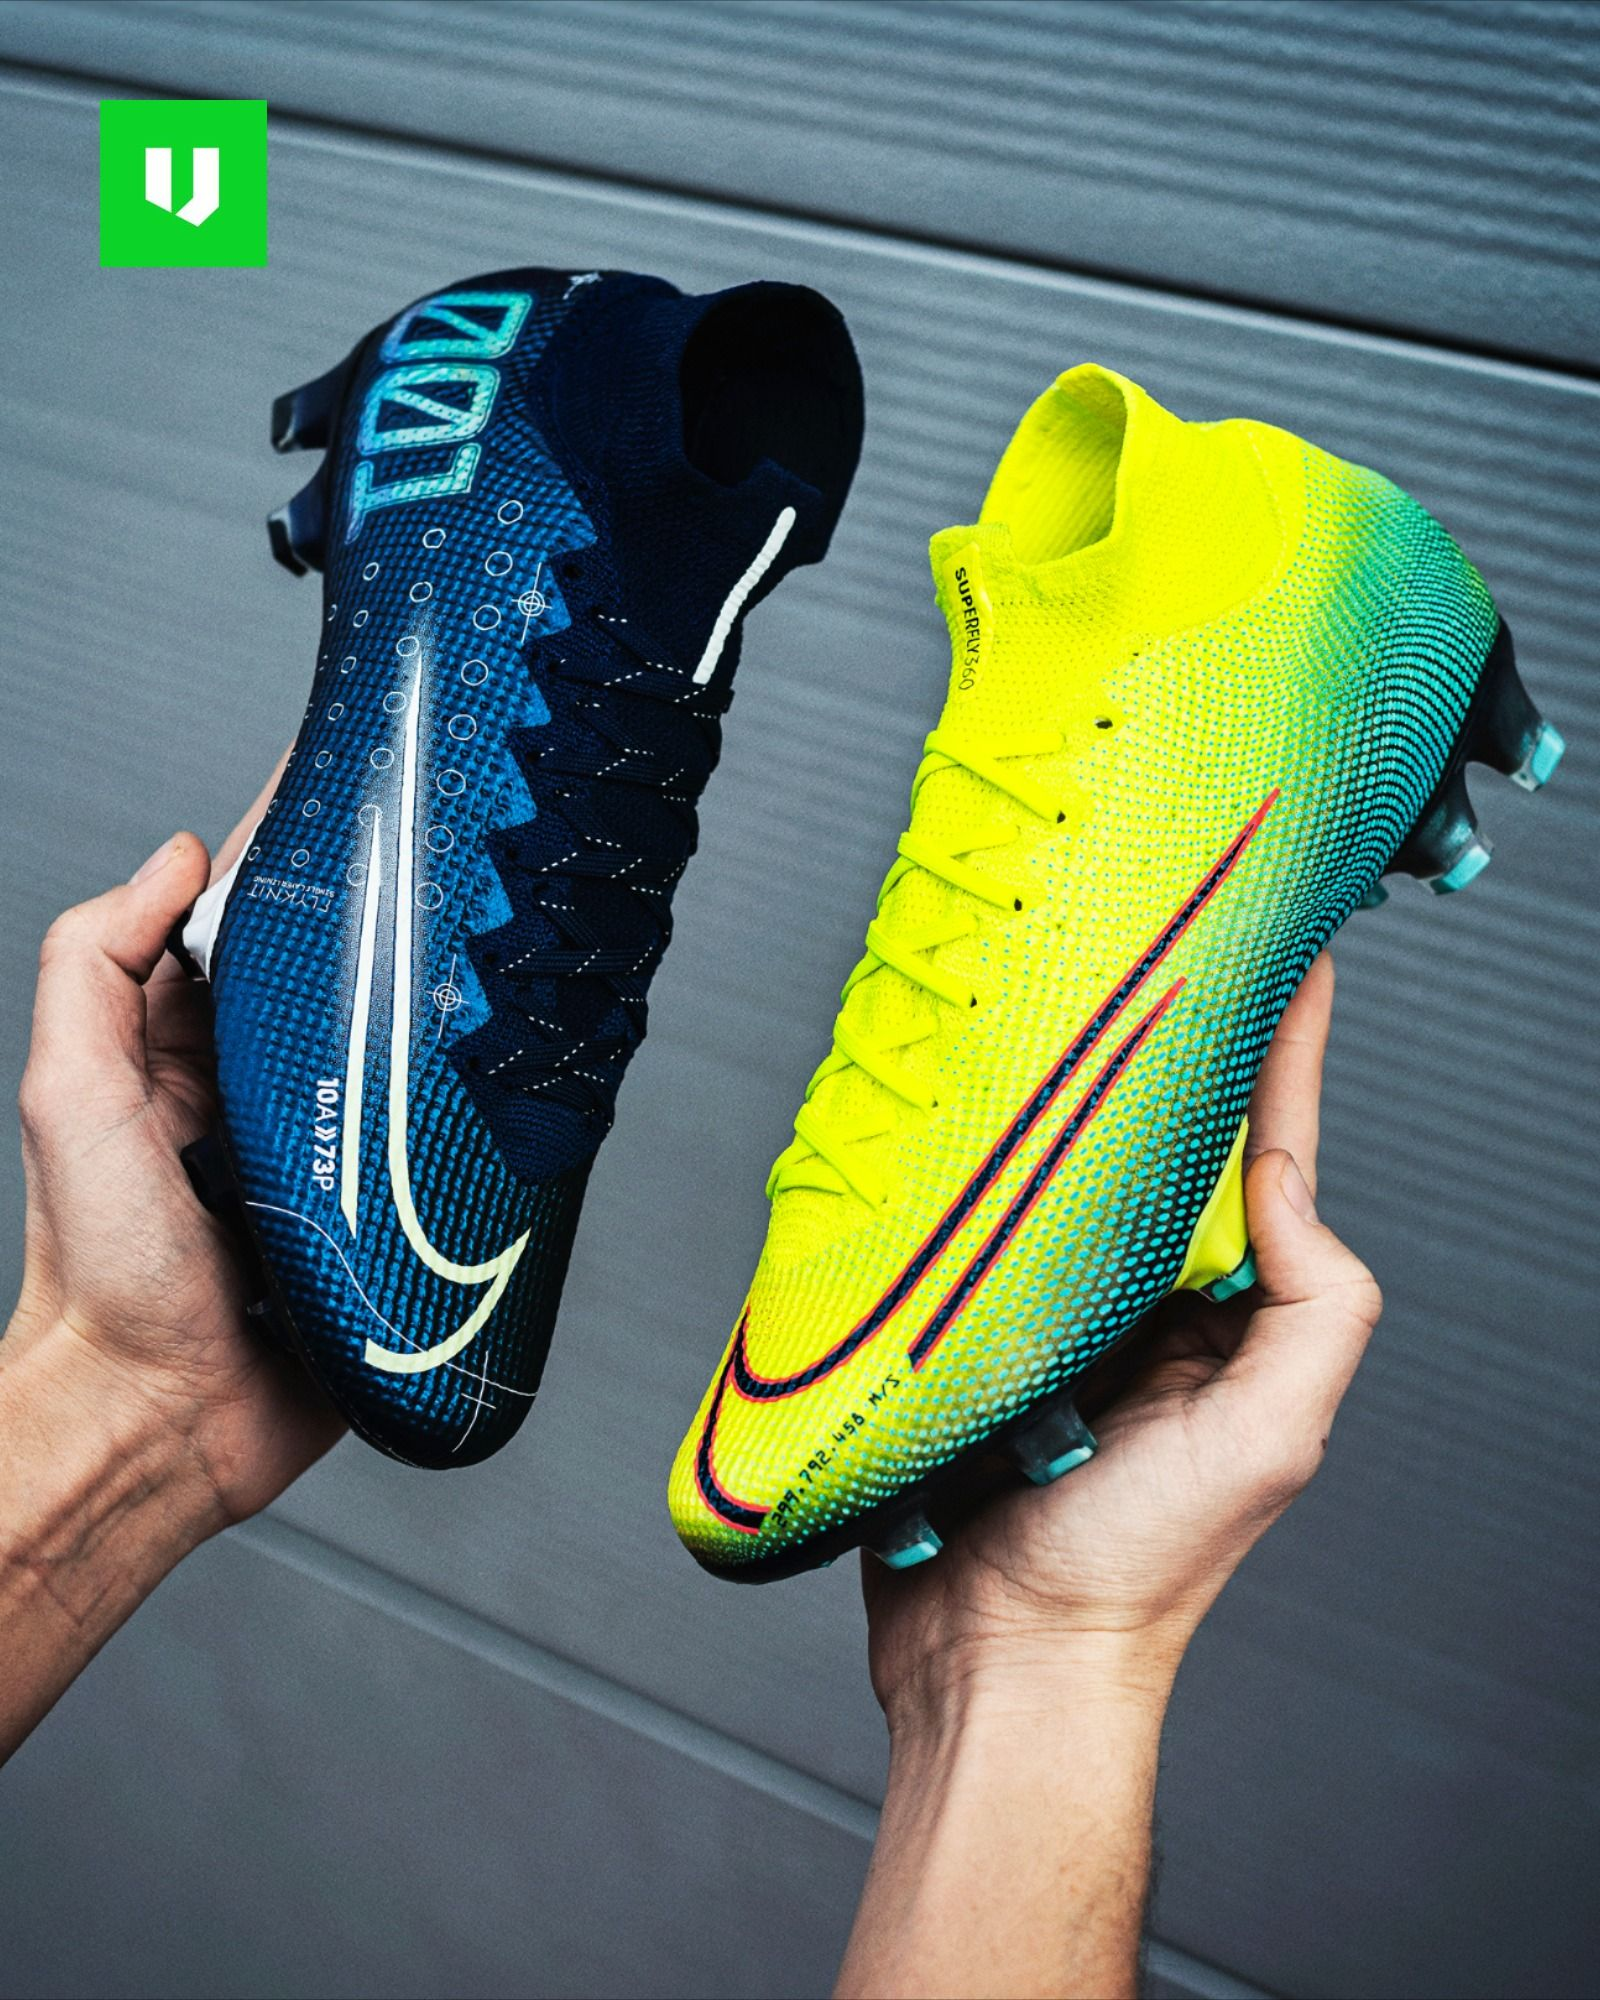 Nike Dream Speed Battle In 2020 Nike Football Boots Soccer Boots Football Boots